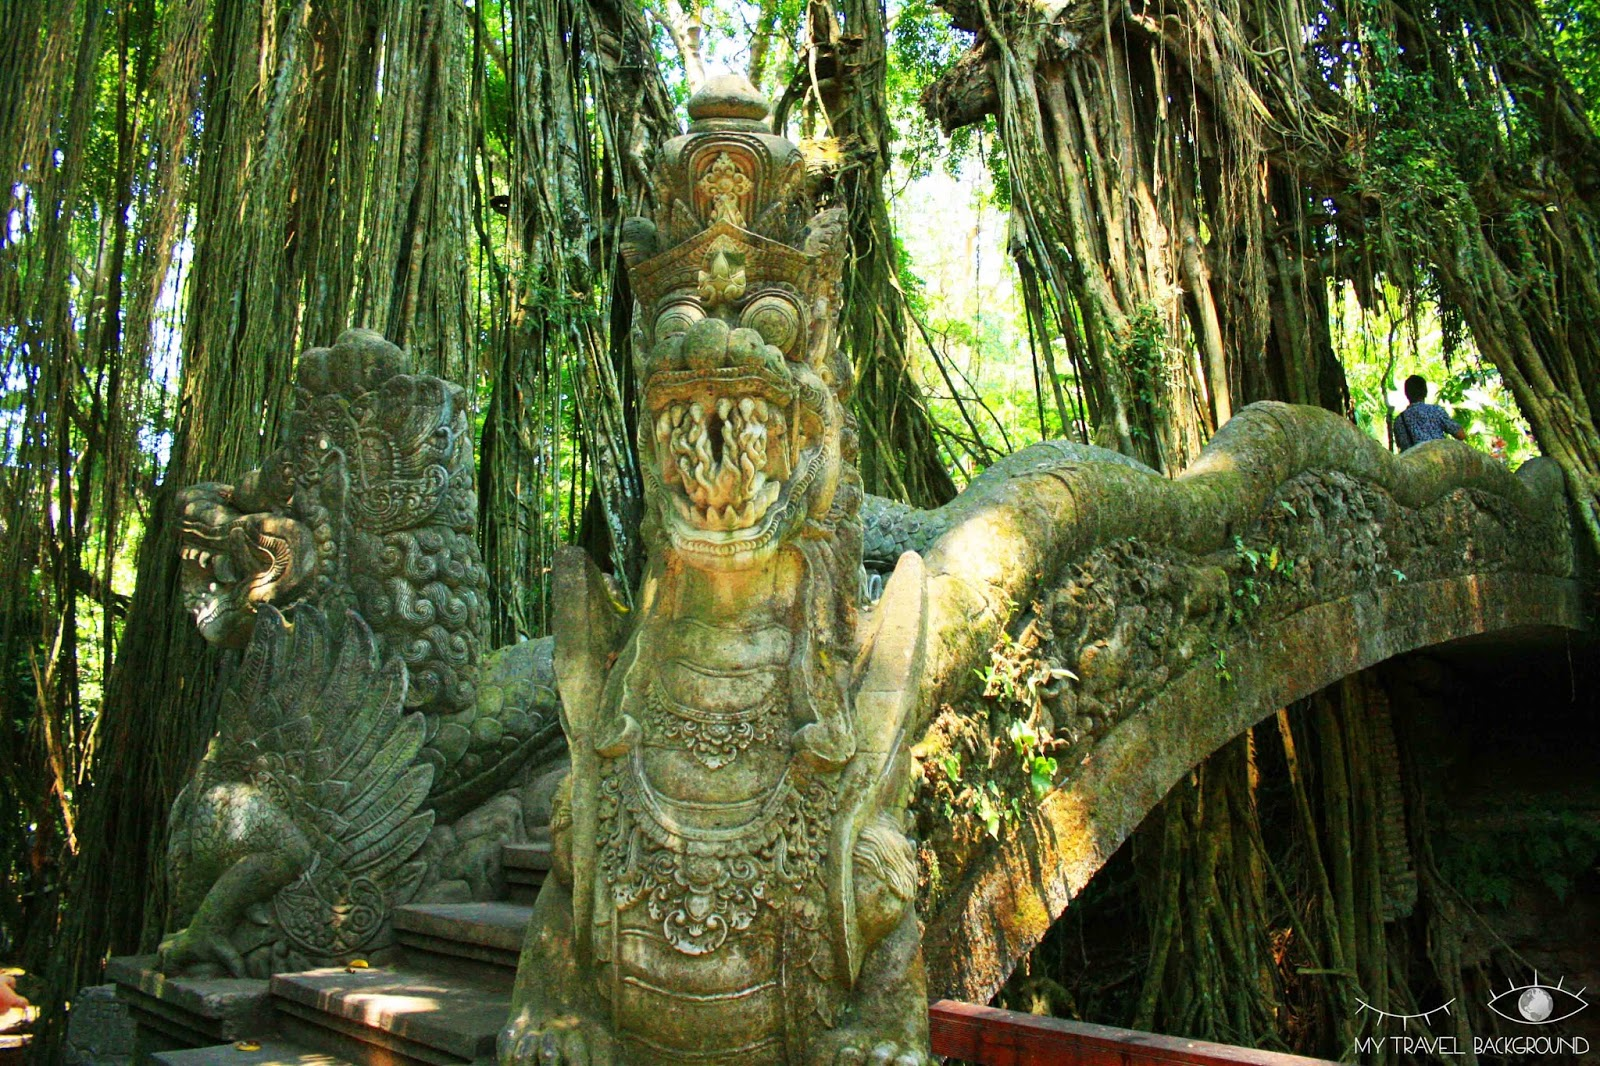 My Travel Background : 6 choses à faire à Ubud, au centre de Bali - La forêt des singes